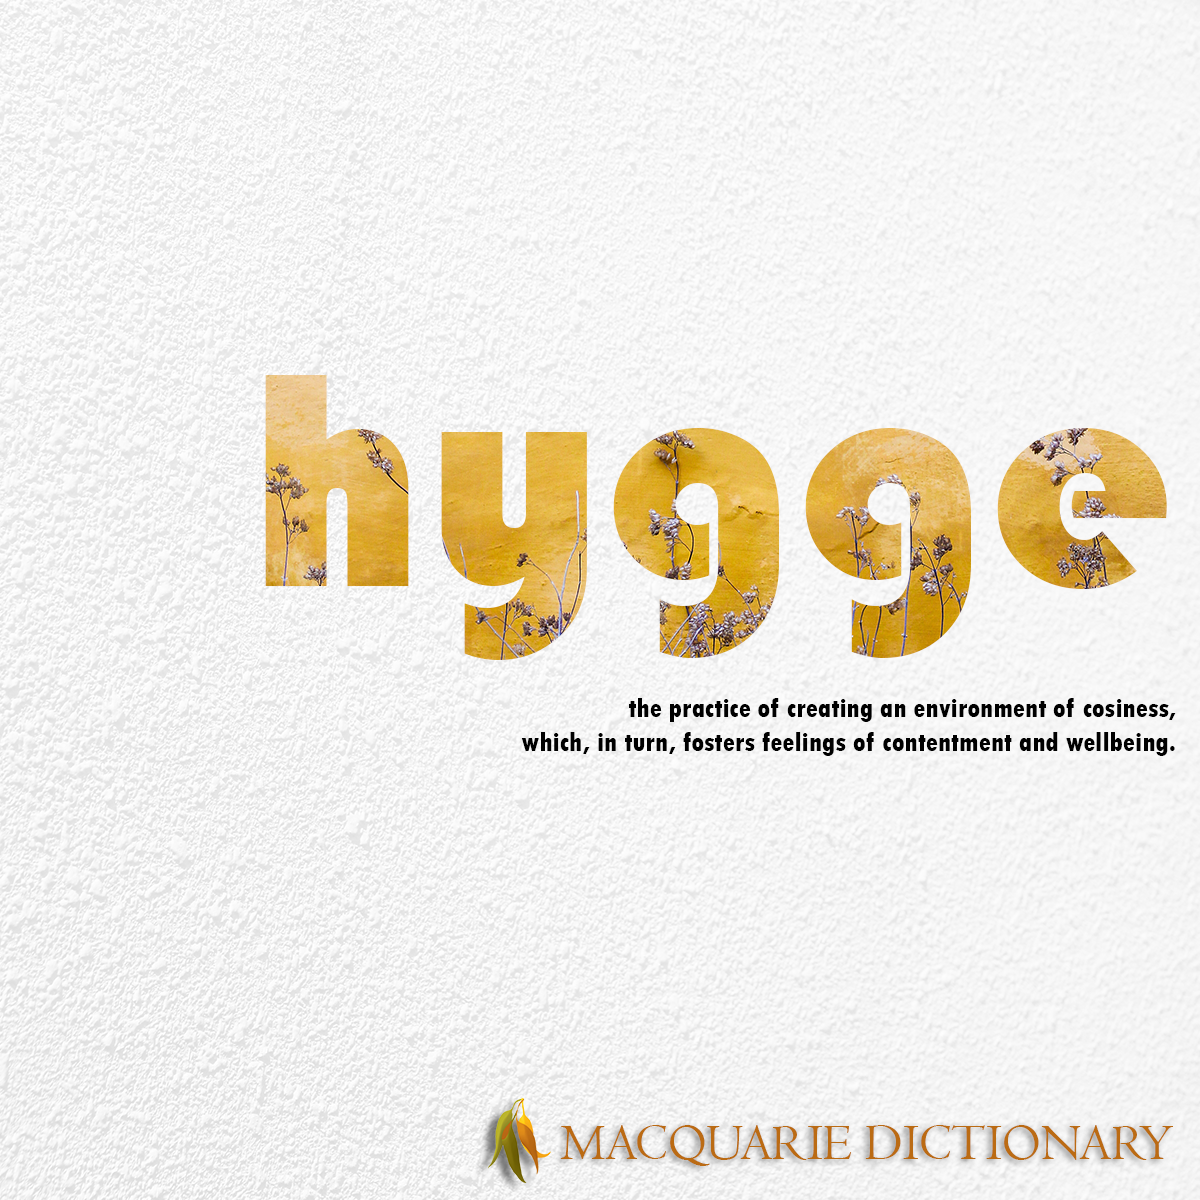 Image of Macquarie Dictionary Word of the Year - hygge - the practice of creating an environment of cosiness, which, in turn, fosters feelings of contentment and wellbeing.